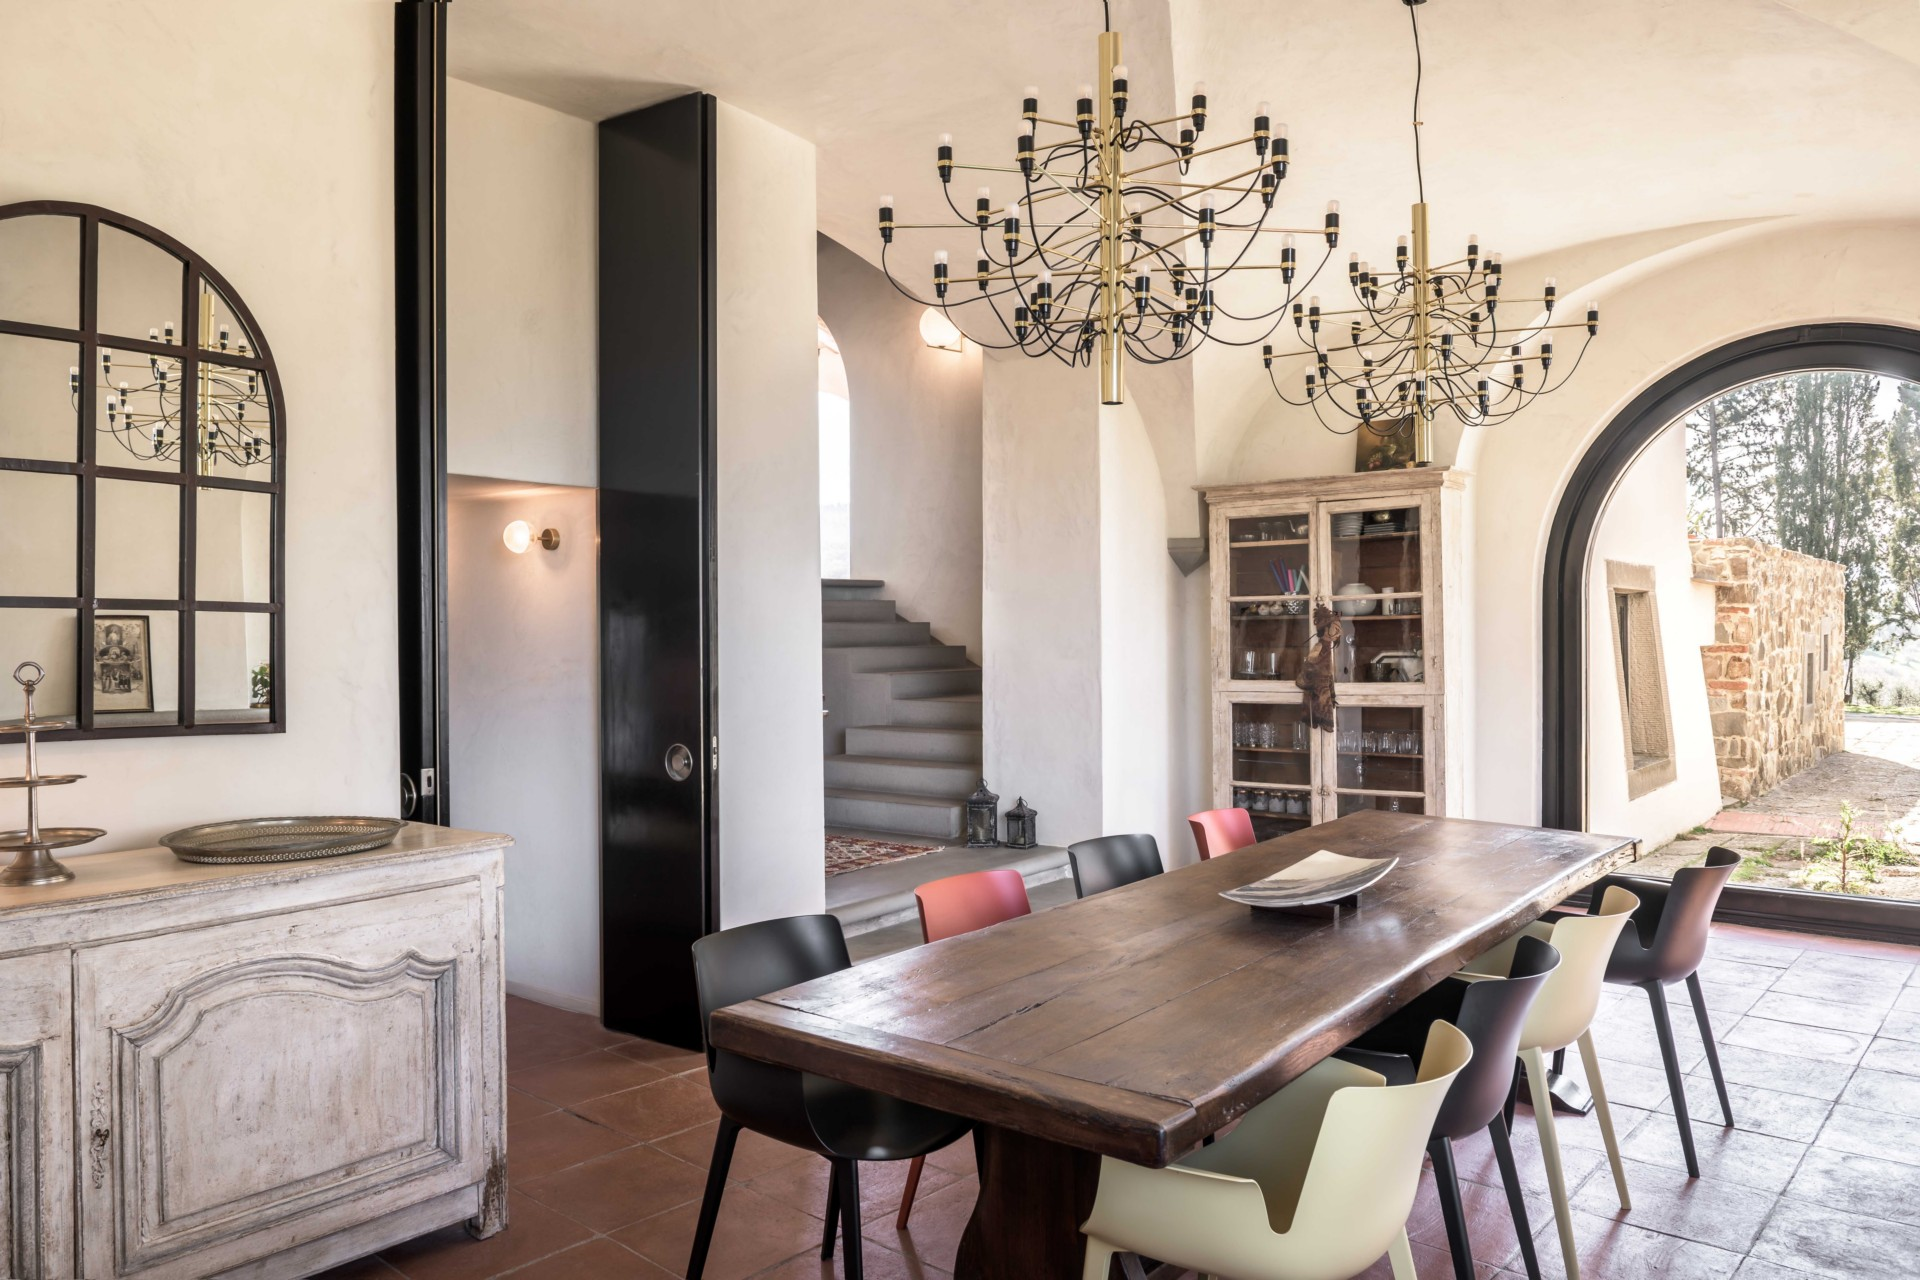 Pierattelli Architetture Designs The Interior Of An Old Tuscany Farmhouse Floornature,Opposite Color Of Blue Green